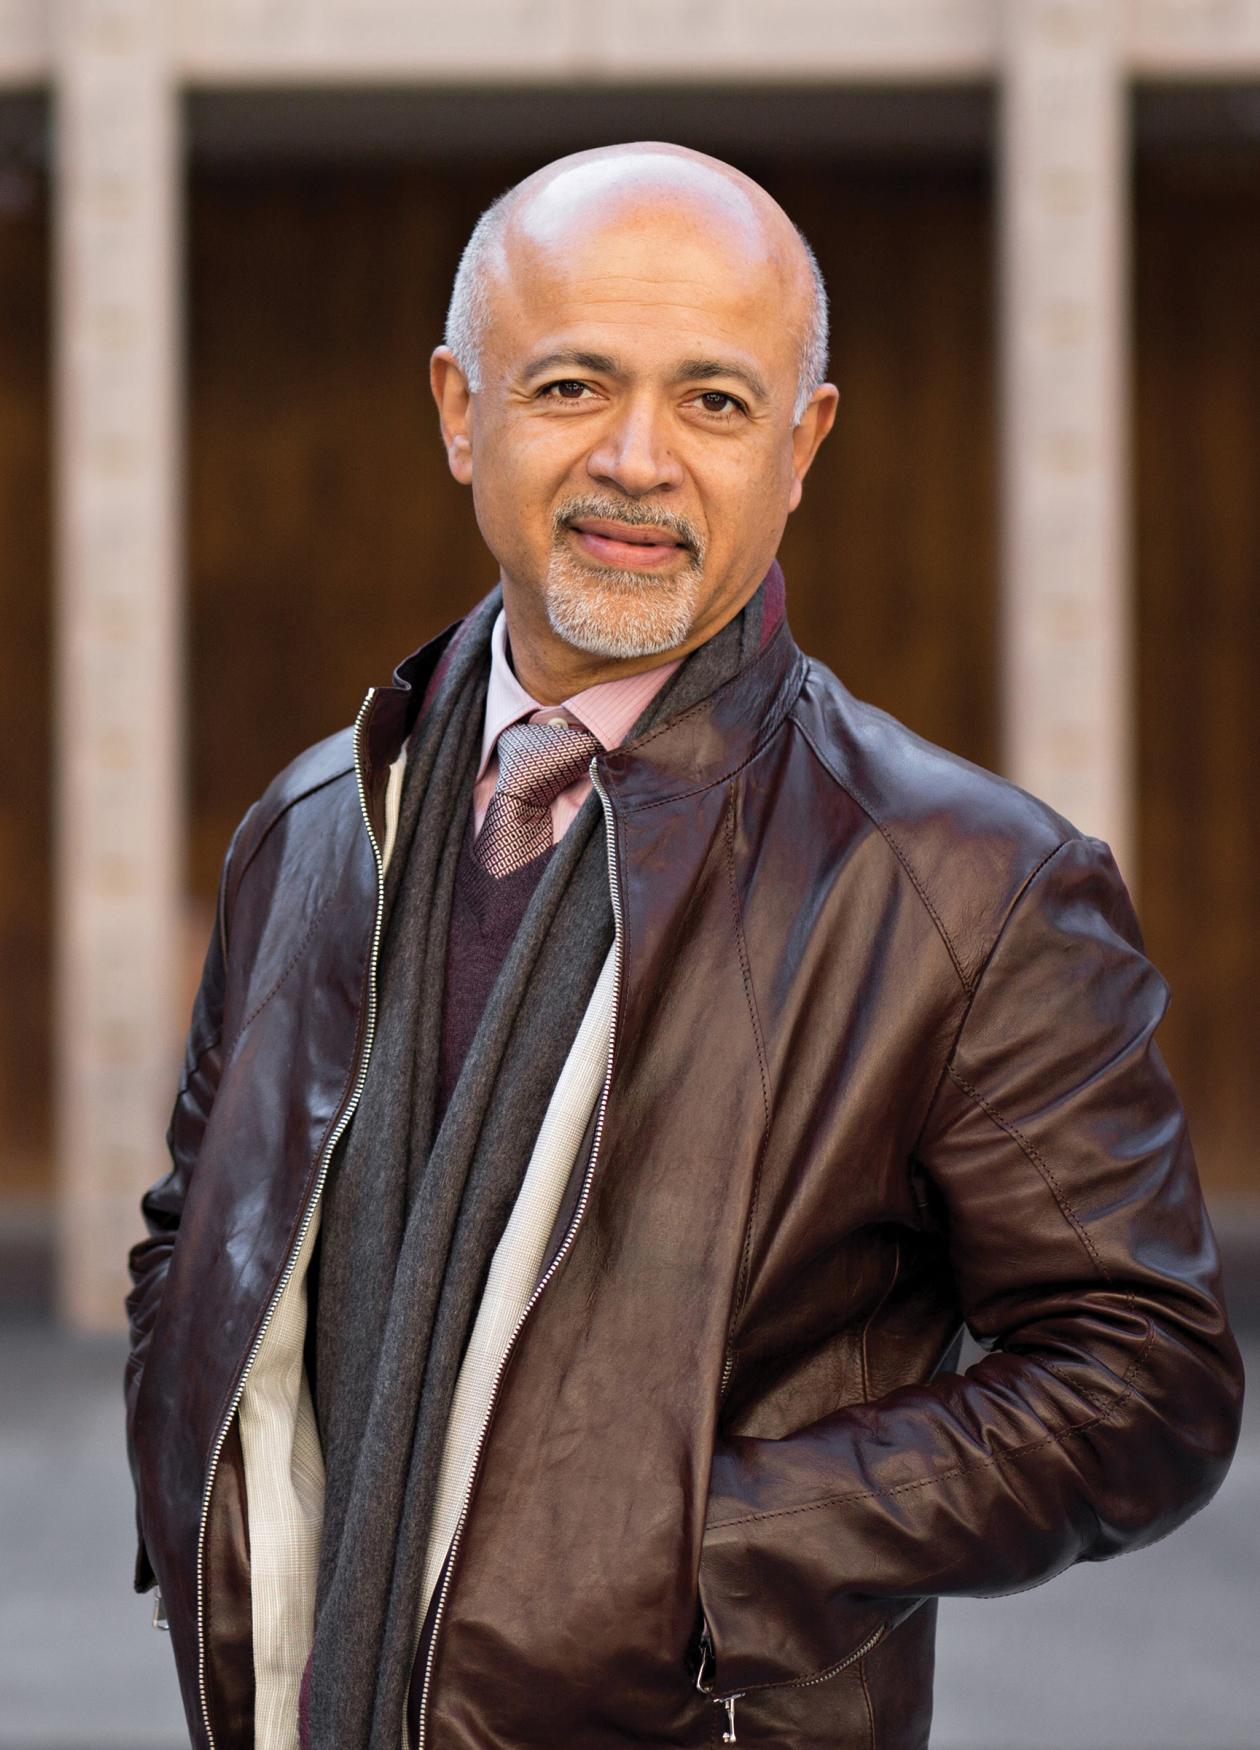 Abraham Verghese, in a leather jacket with his hands in his pockets